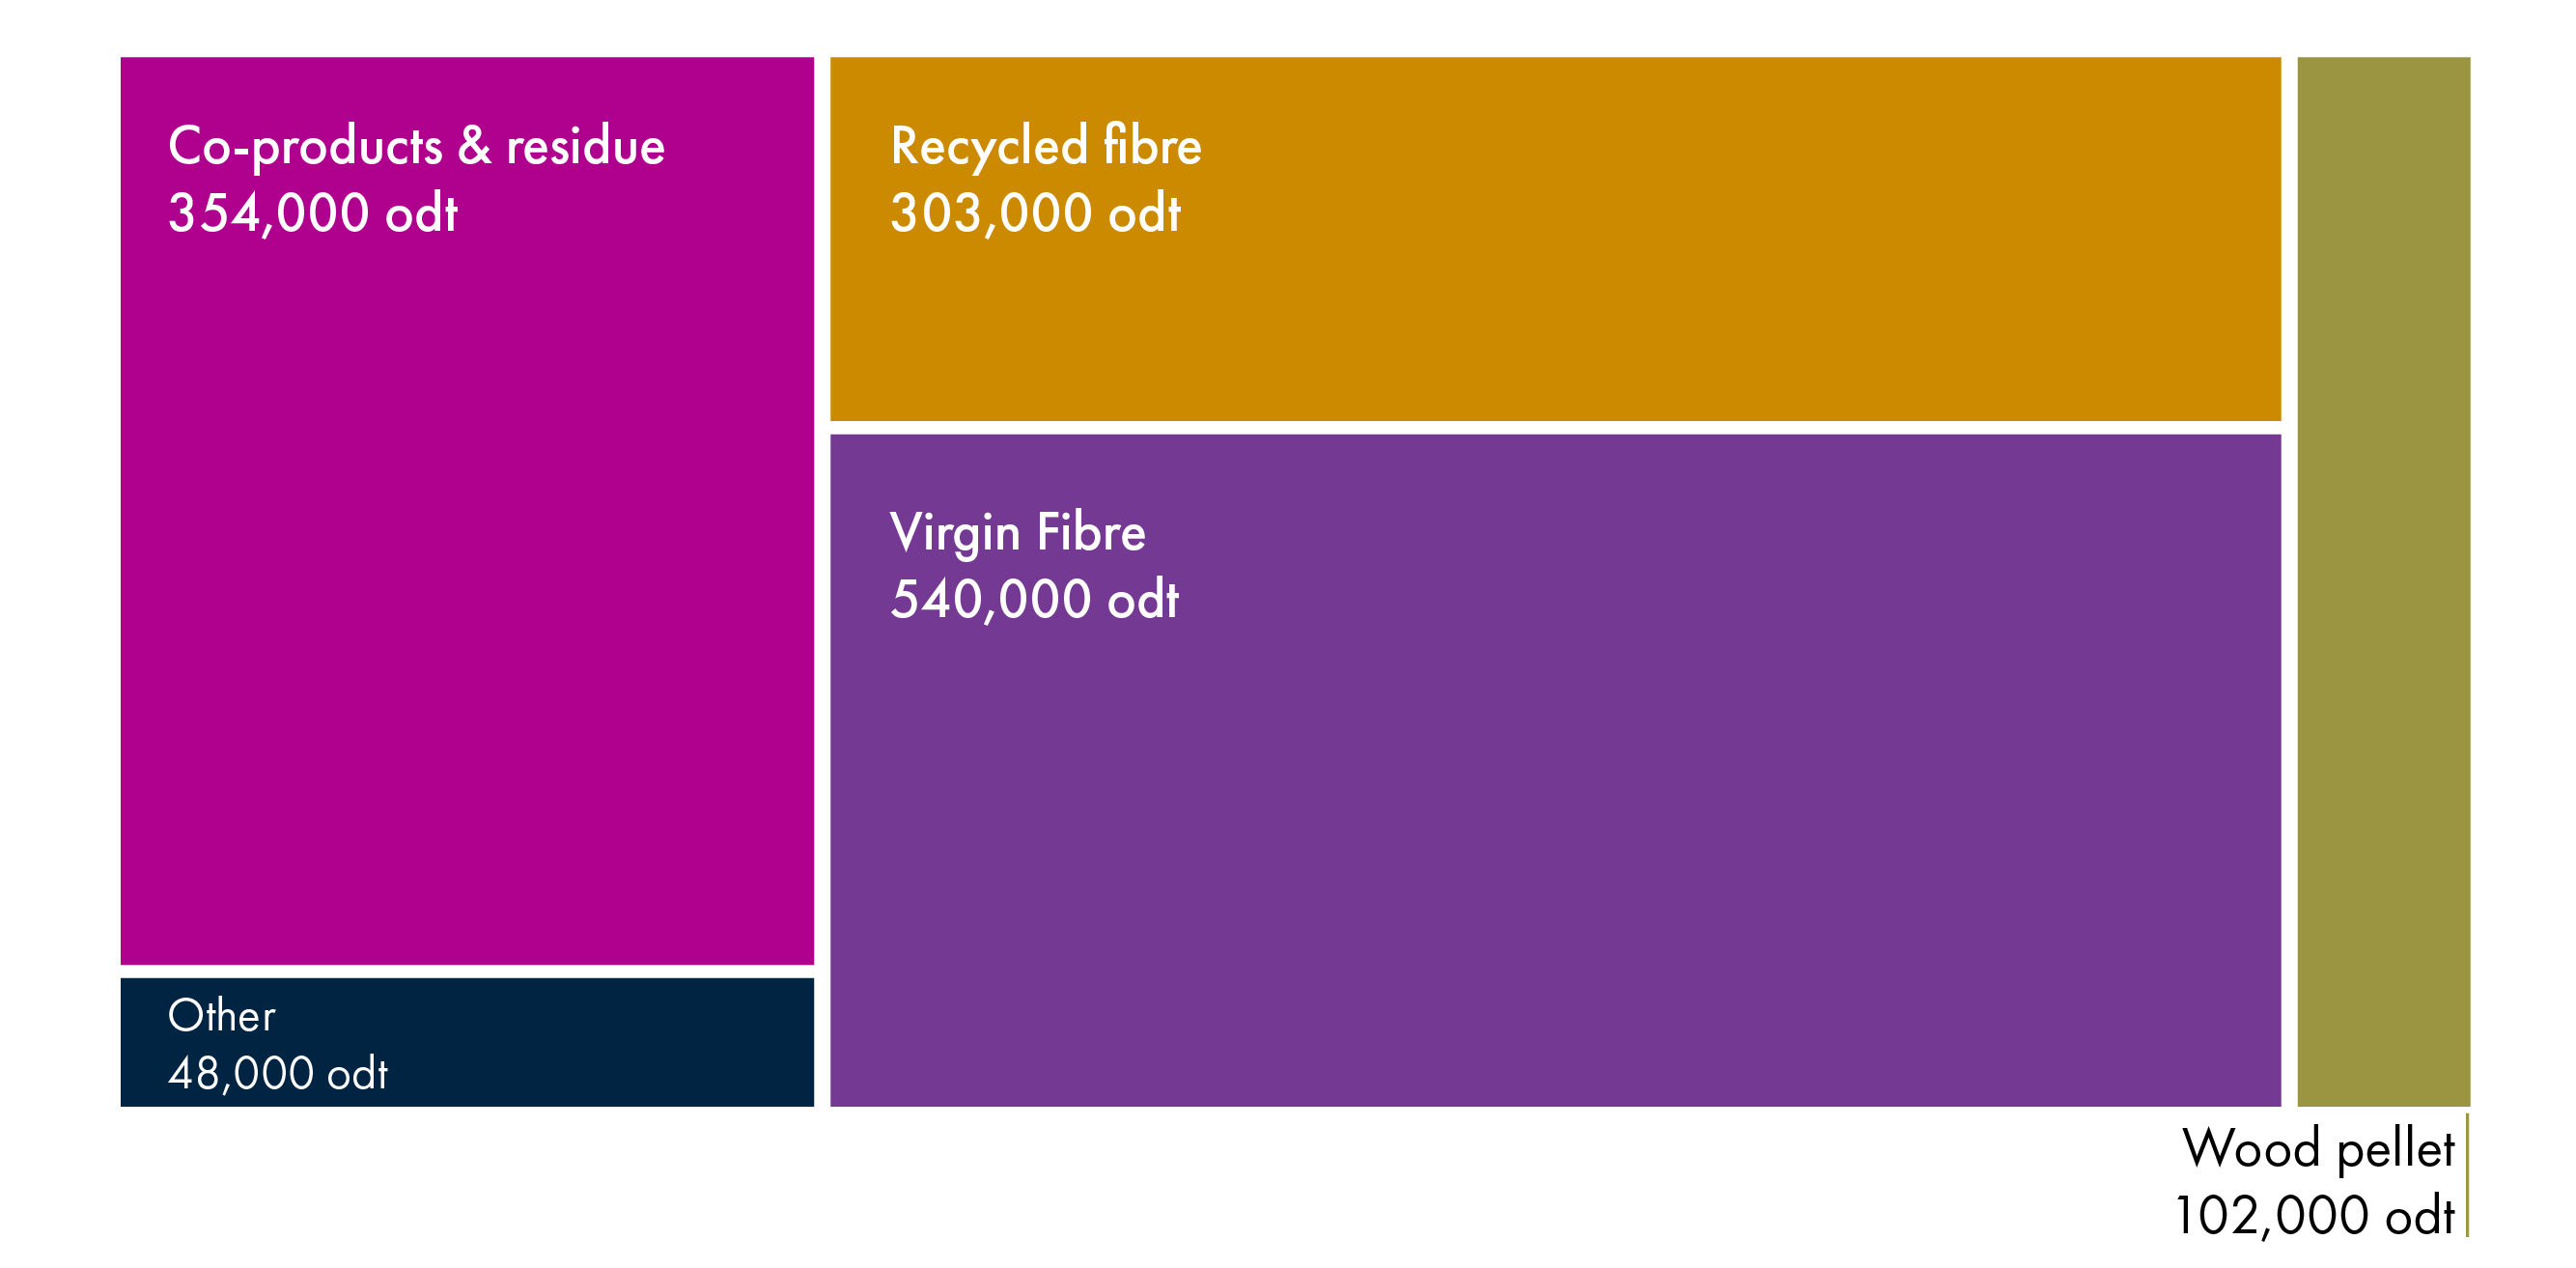 The greatest proportion of woodfuel used in Scotland in 2018 was virgin fibre